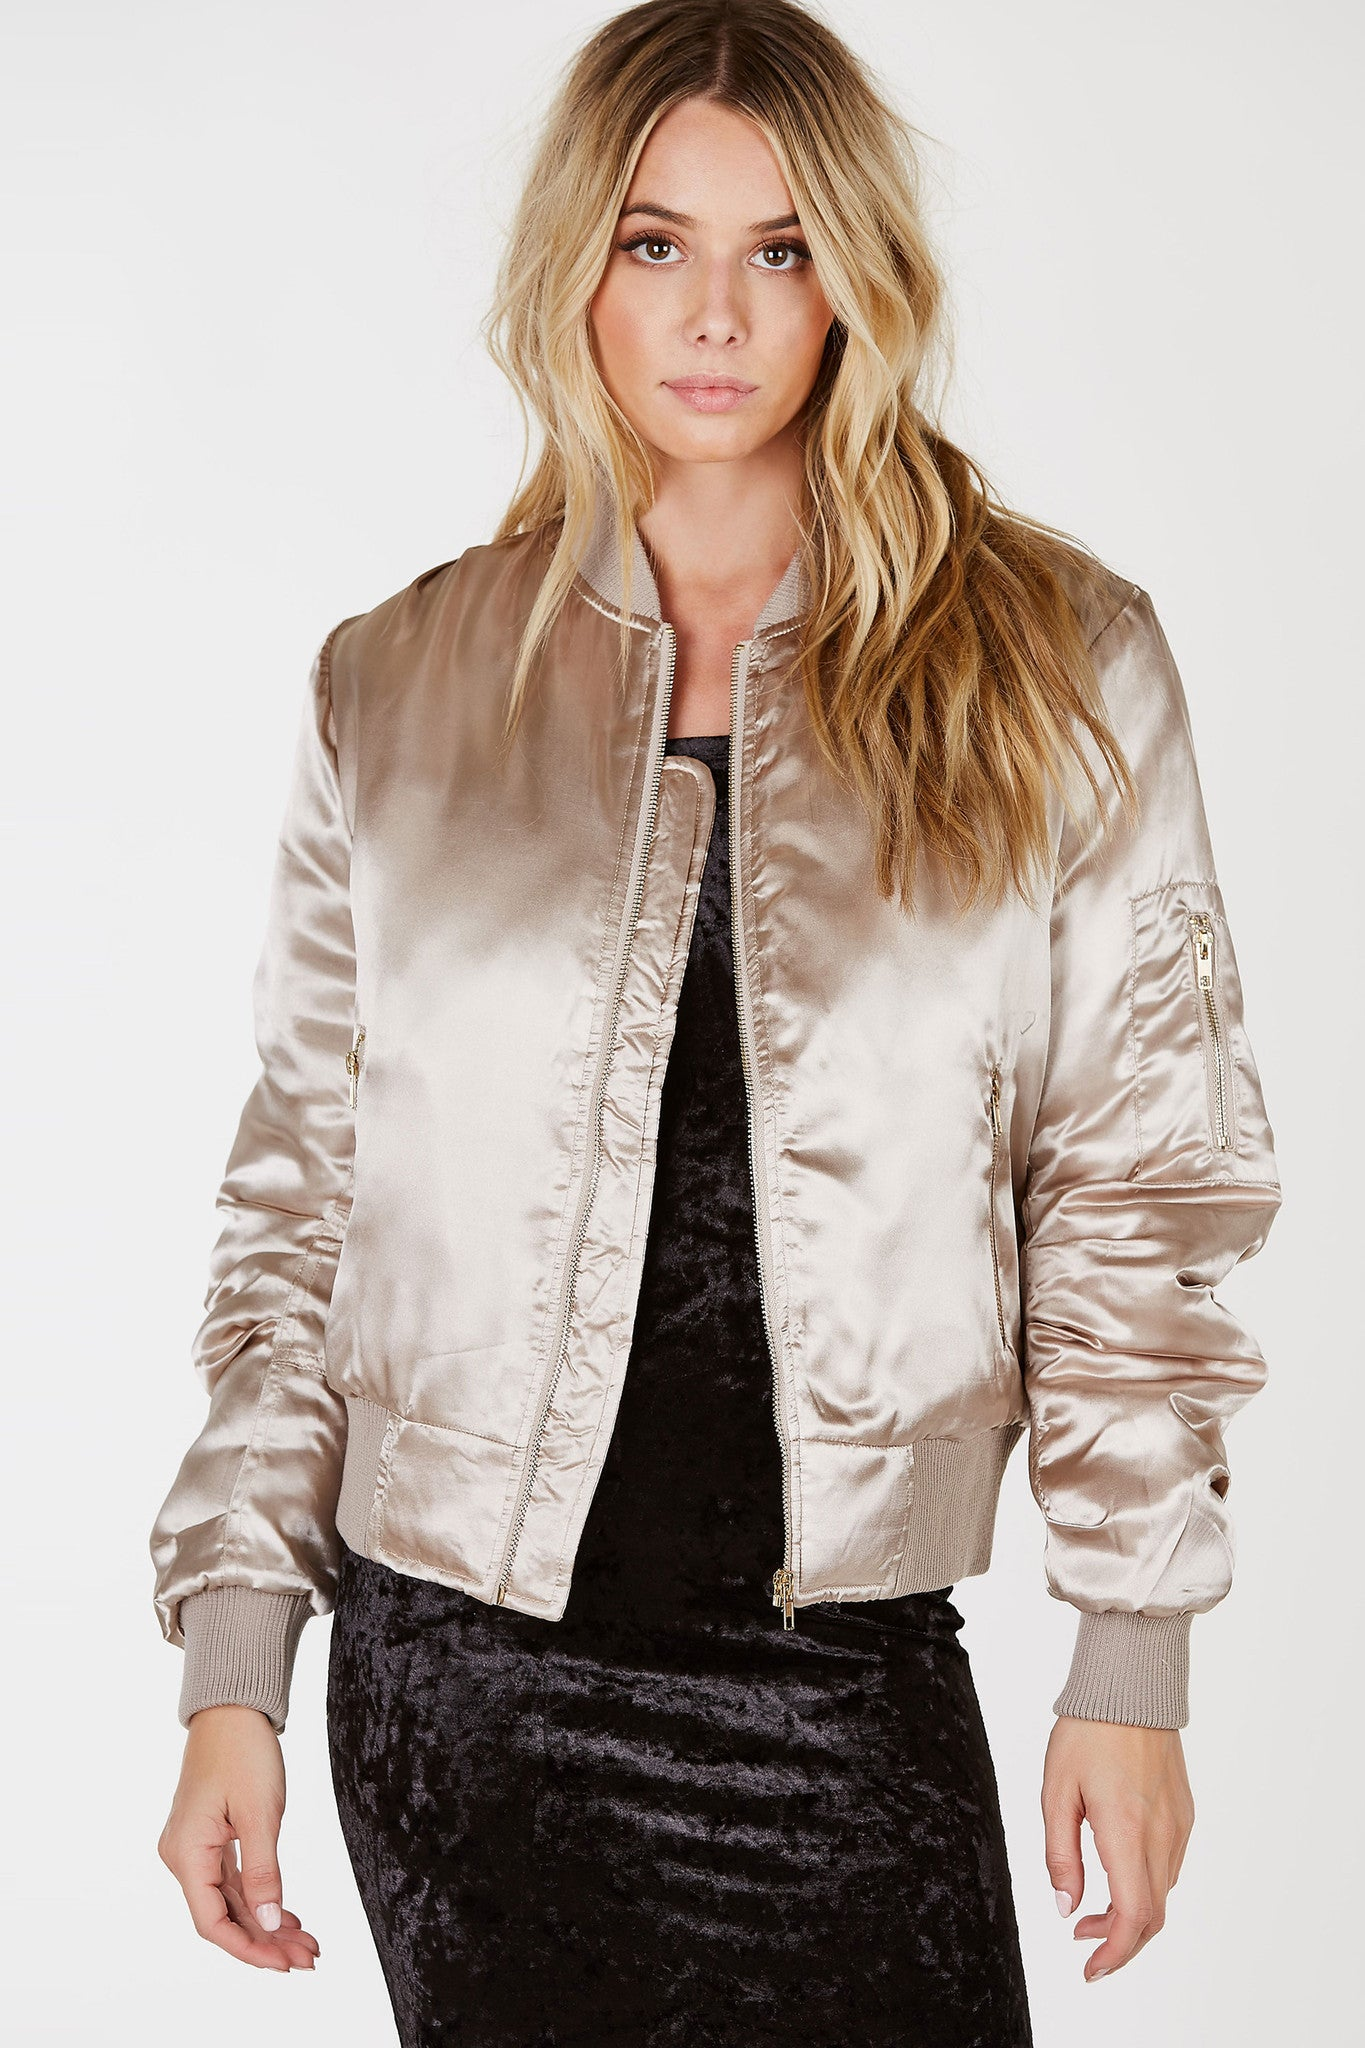 Look and feel extra smooth in this dope padded bomber! Stylish satin finish with a comfortable fit. Classic ribbed hem all around with a single zip closure. Stay cozy and warm in style by throwing it over your basic Fall outfits!